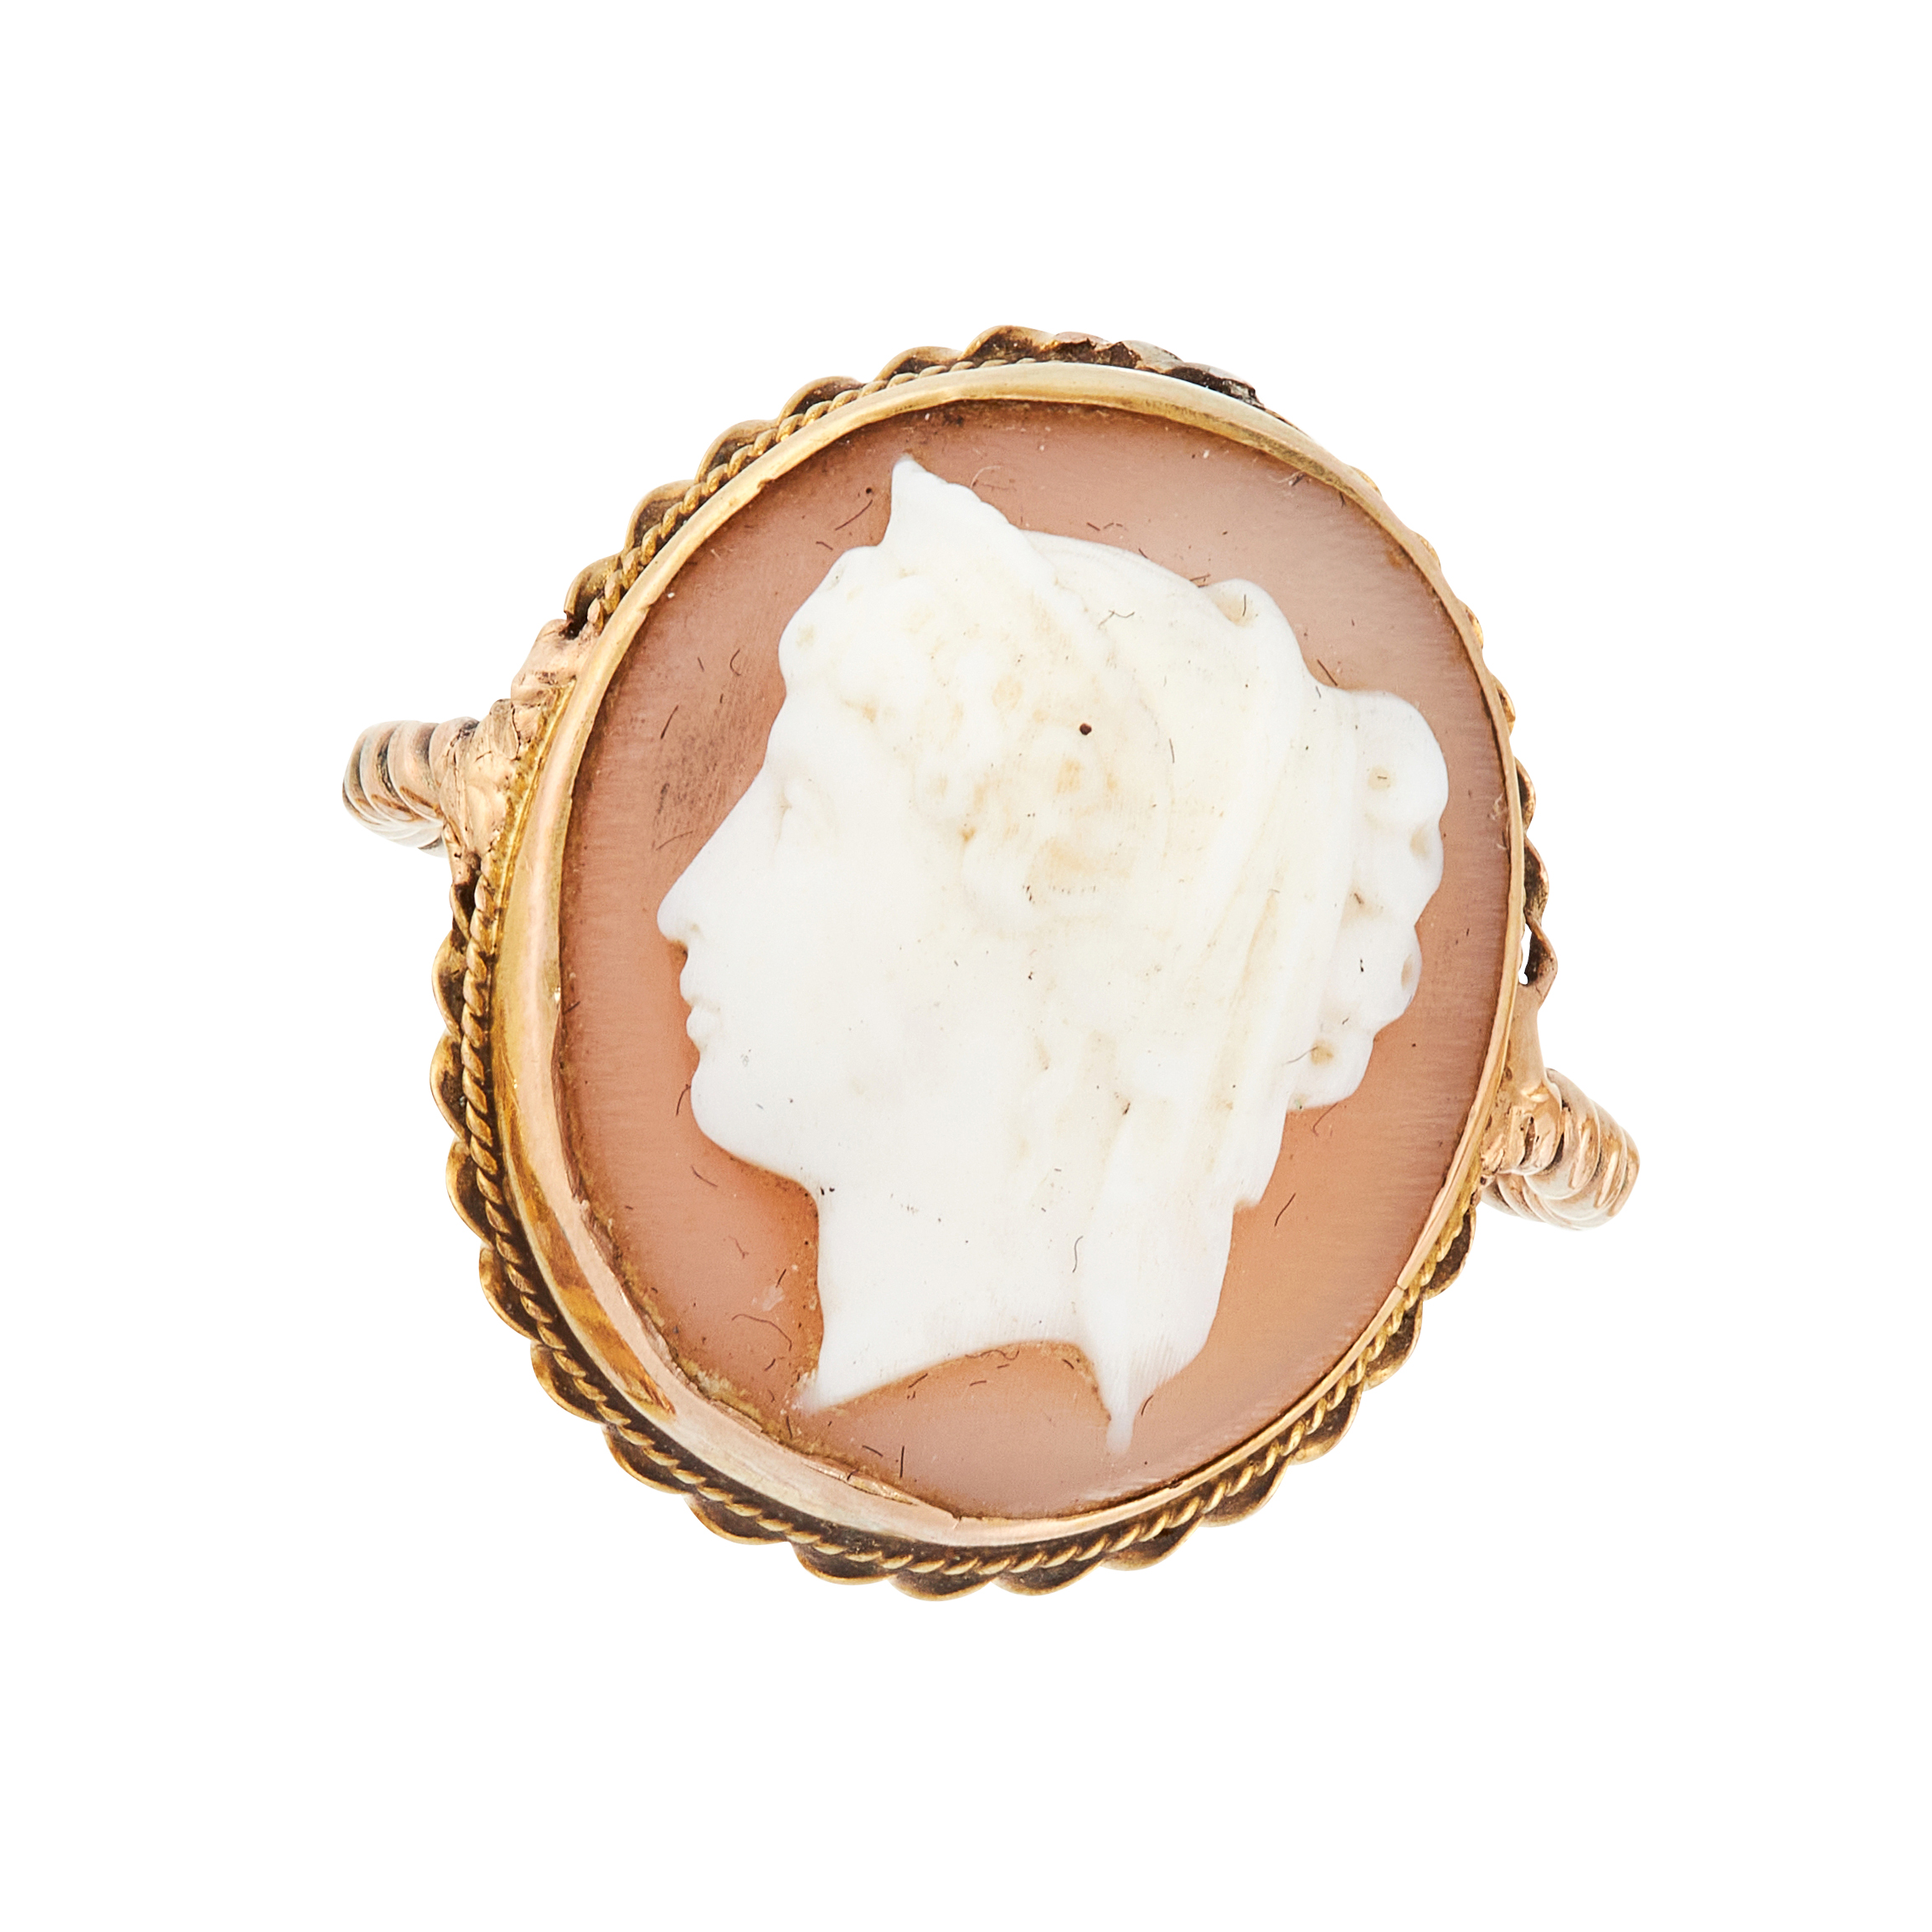 AN ANTIQUE CAMEO DRESS RING in yellow gold, set with an oval cameo carved to depict the bust of a